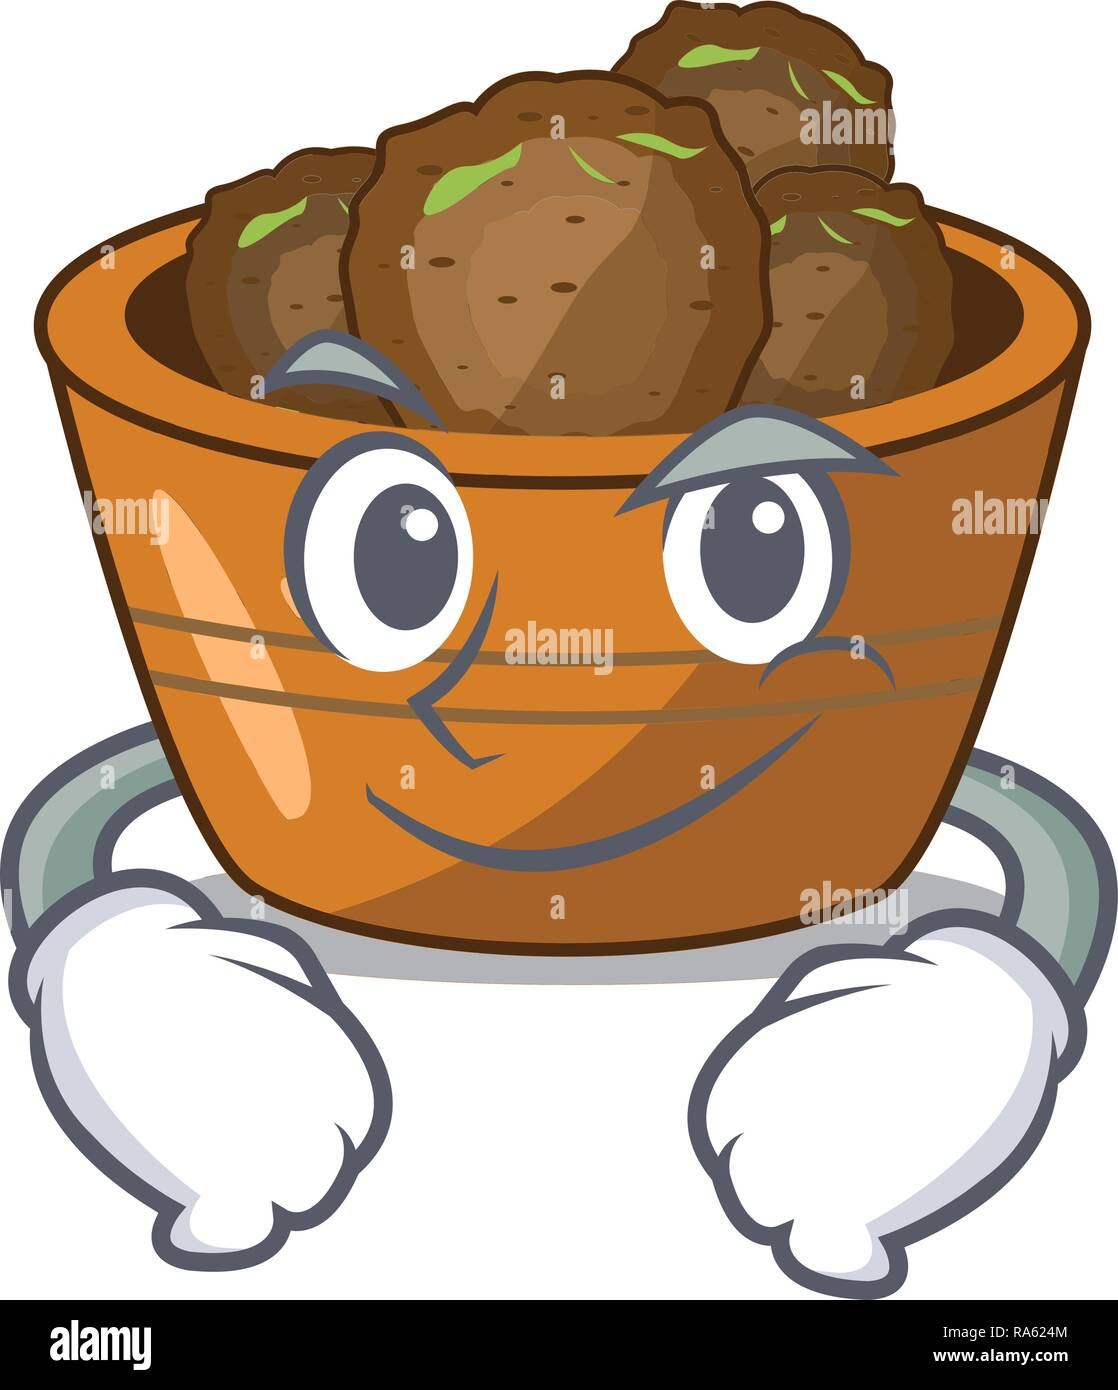 Smirking gulab jamun on the character table - Stock Vector